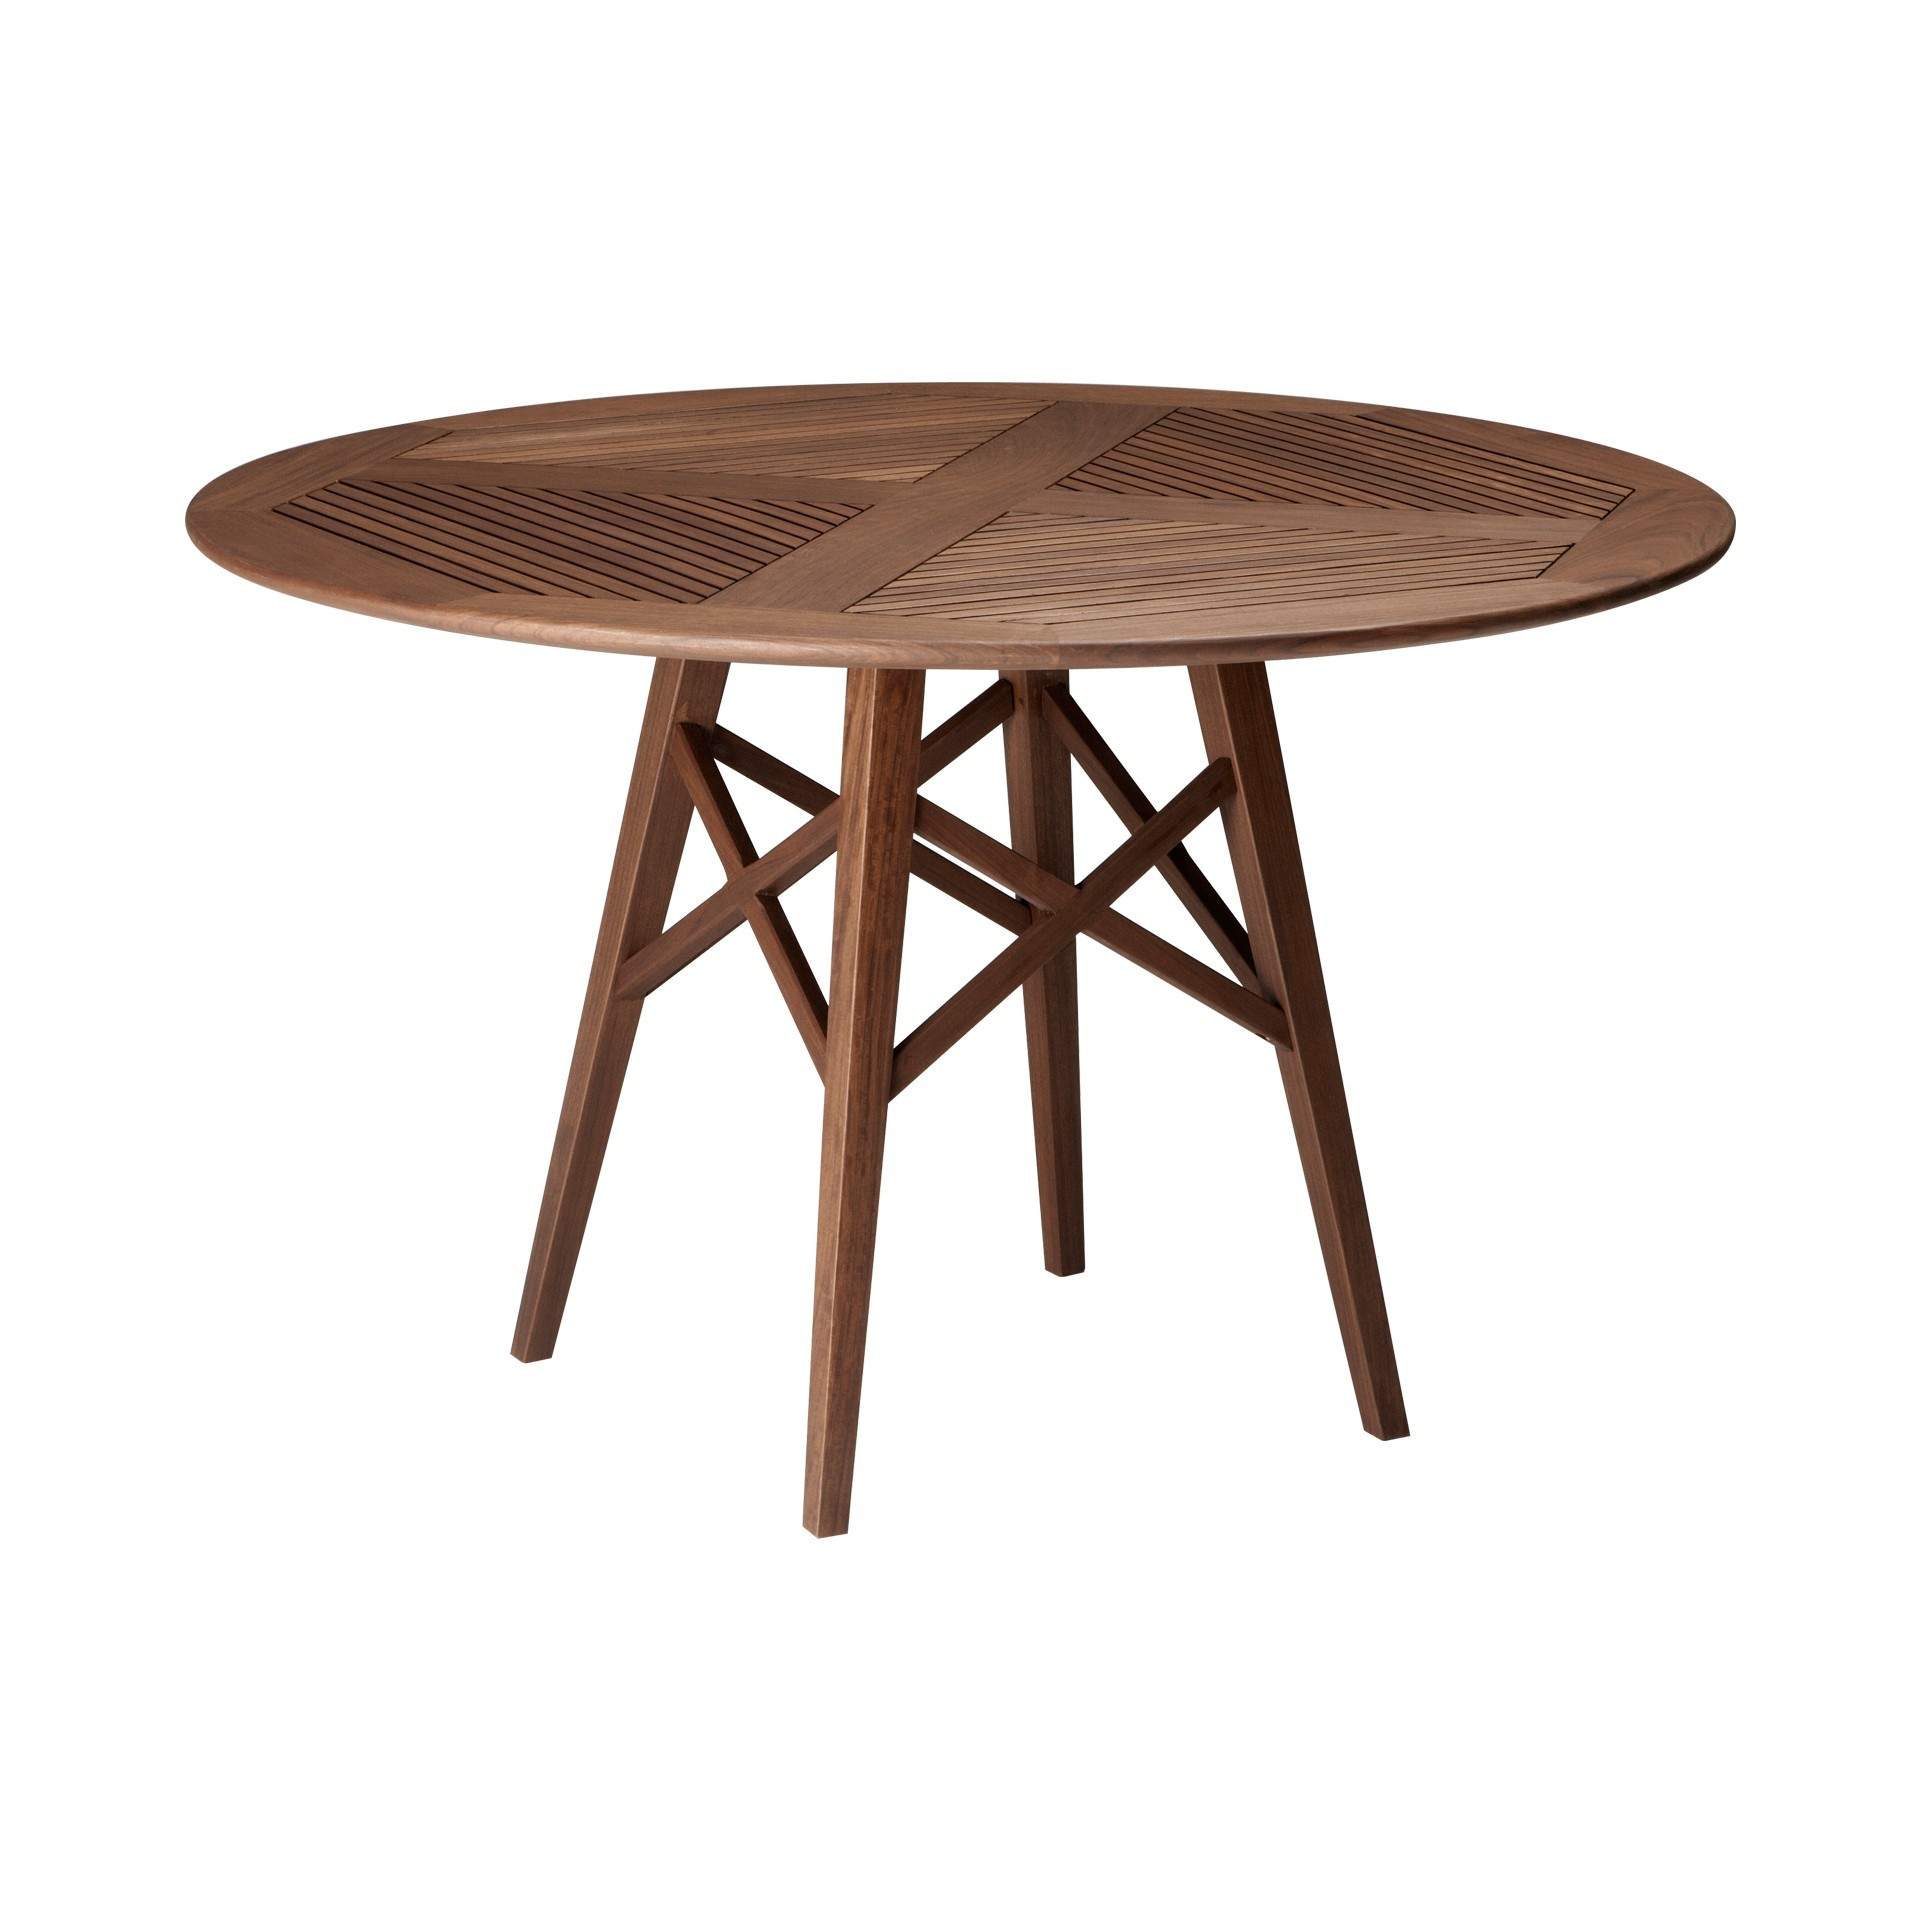 Opal Round Table Hausers Patio - 36 inch round conference table